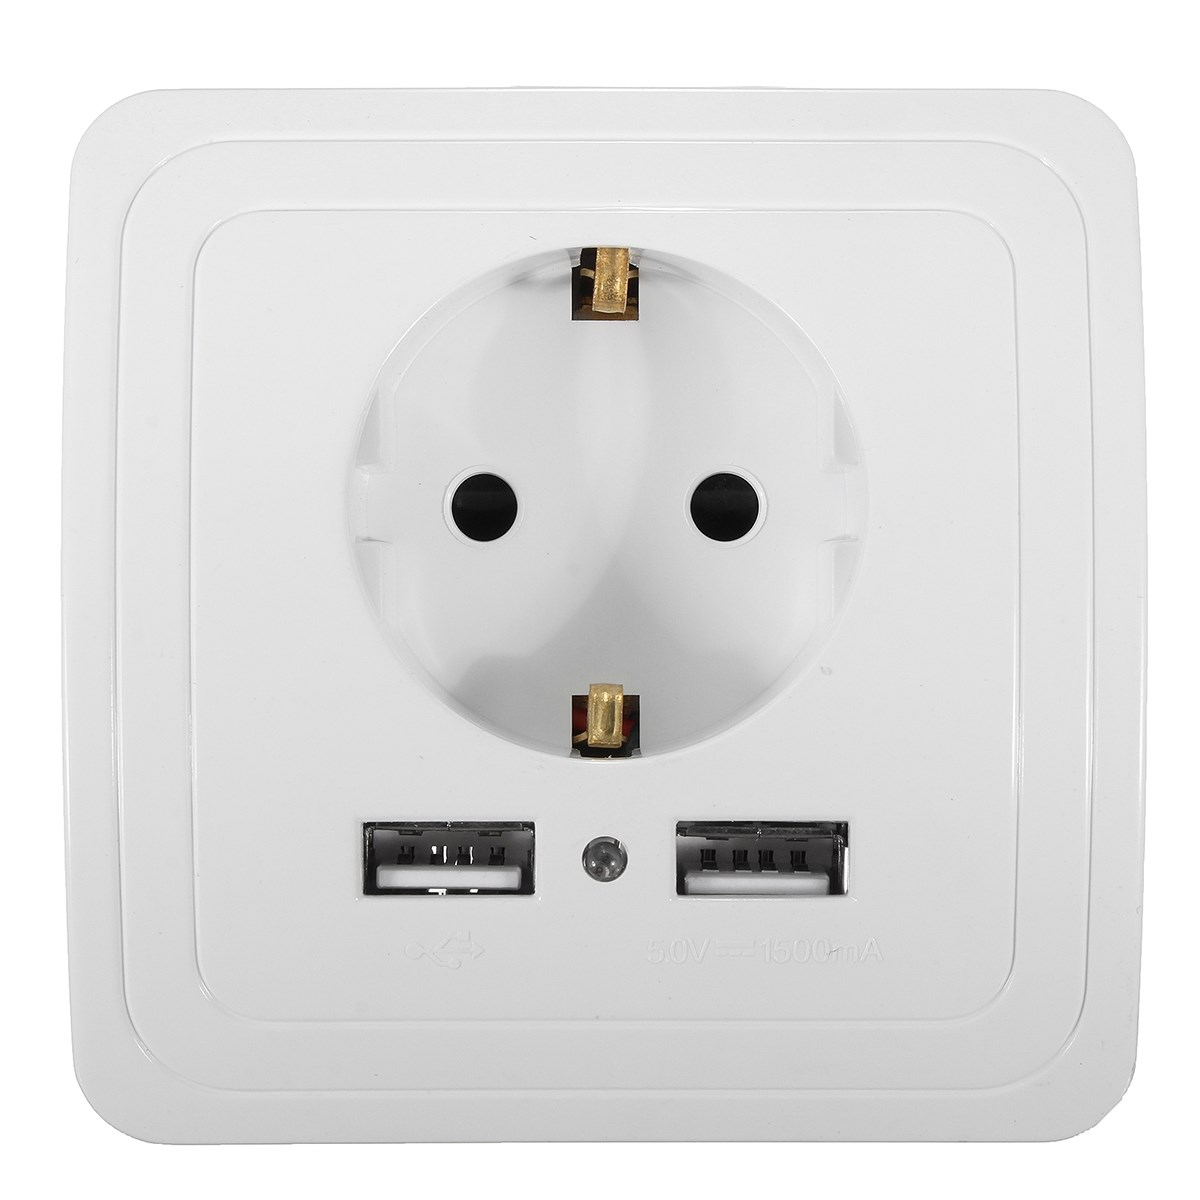 Fuse Box Usb Wall Charger : New arrival a dual usb port wall charger adapter eu plug